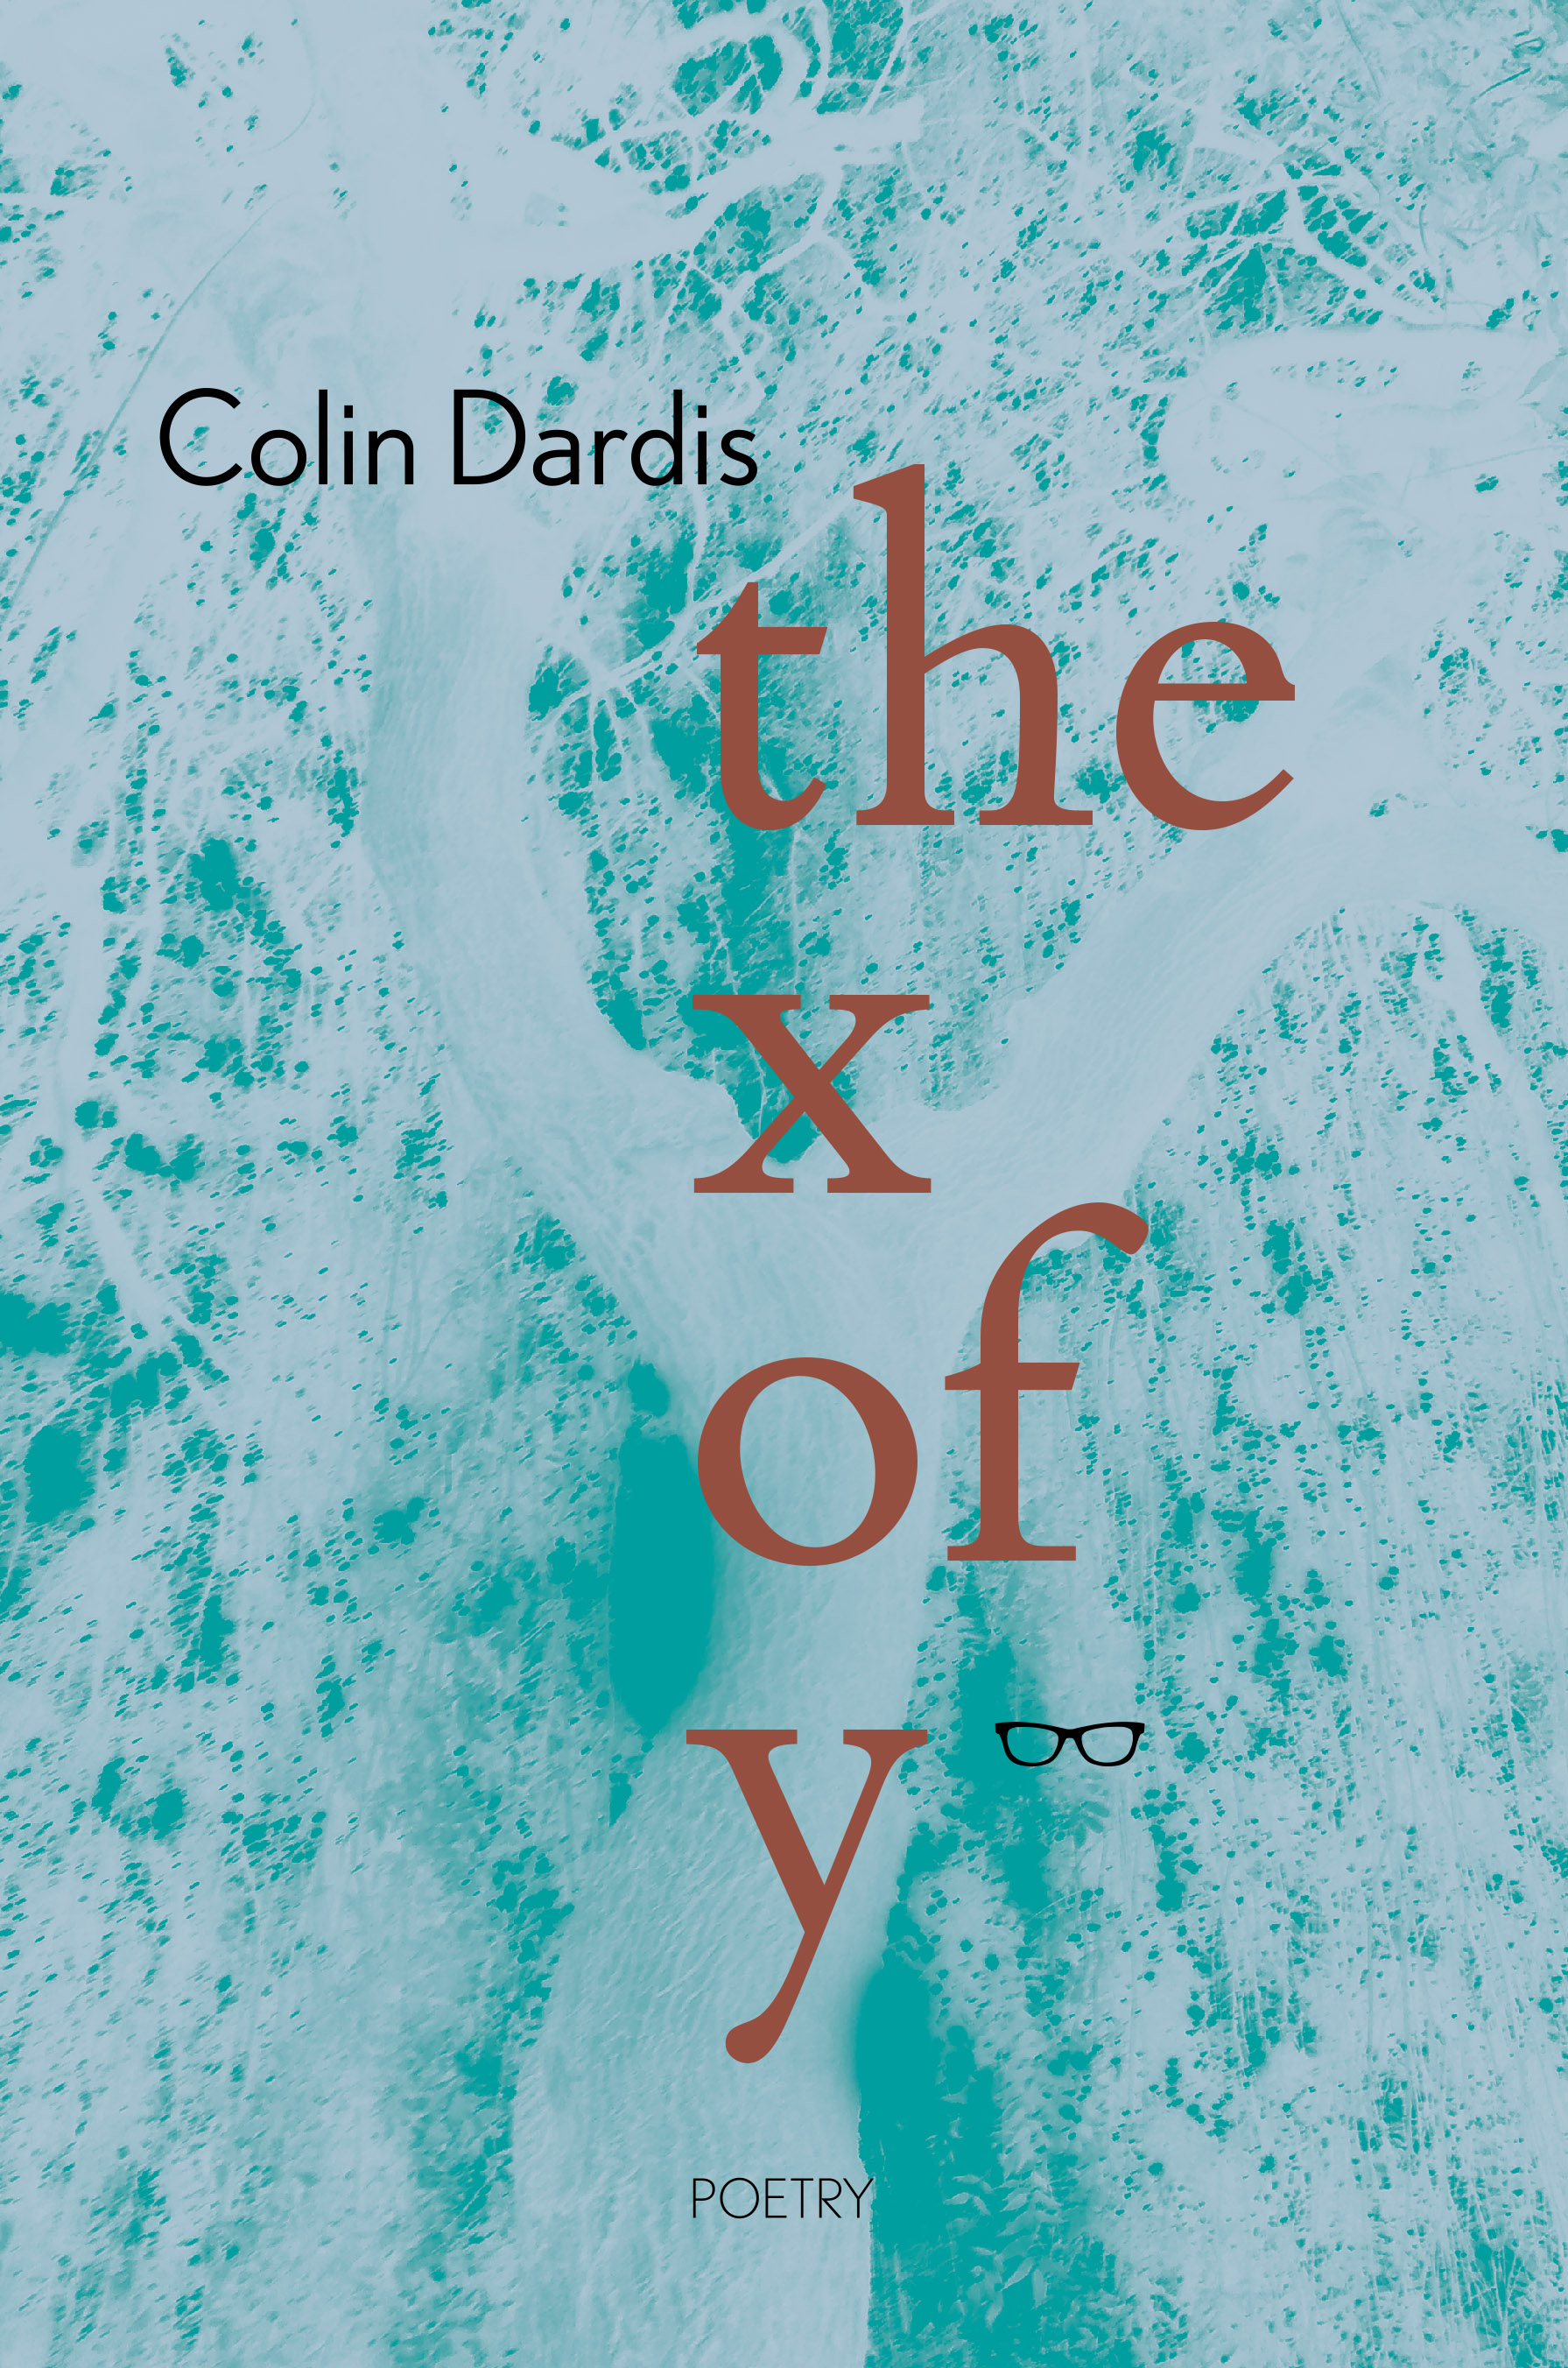 Cover of Colin Dardis poetry, The x of y